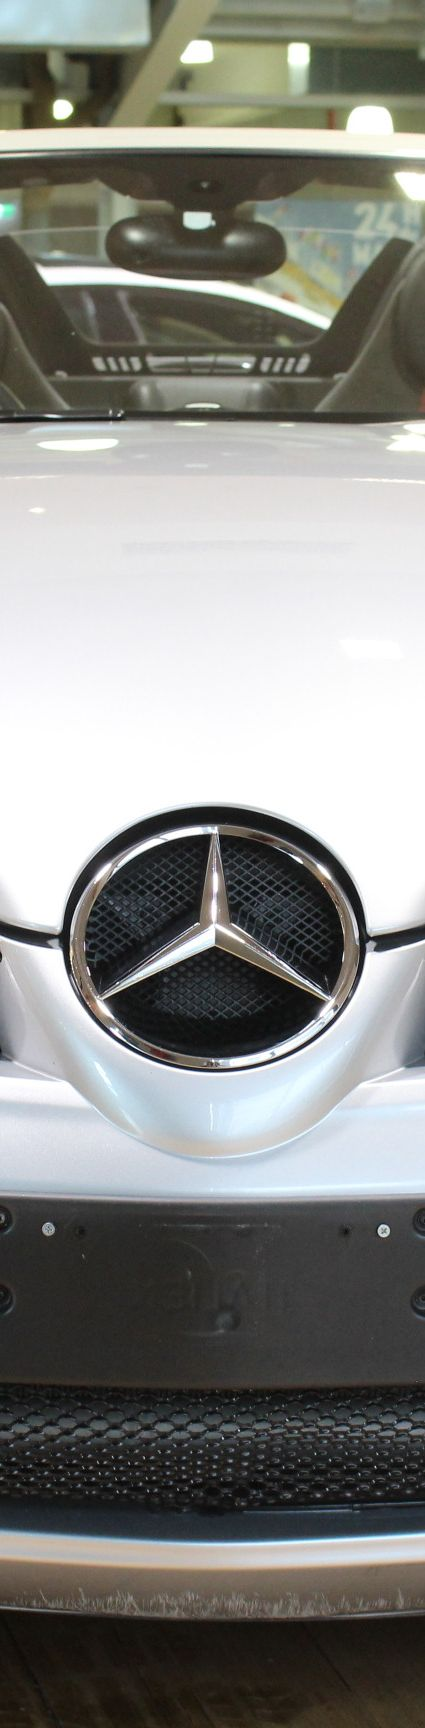 2006 Mercedes-Benz SLK55 R171 Roadster 2dr Auto 7sp 5.5i - for sale in Australia